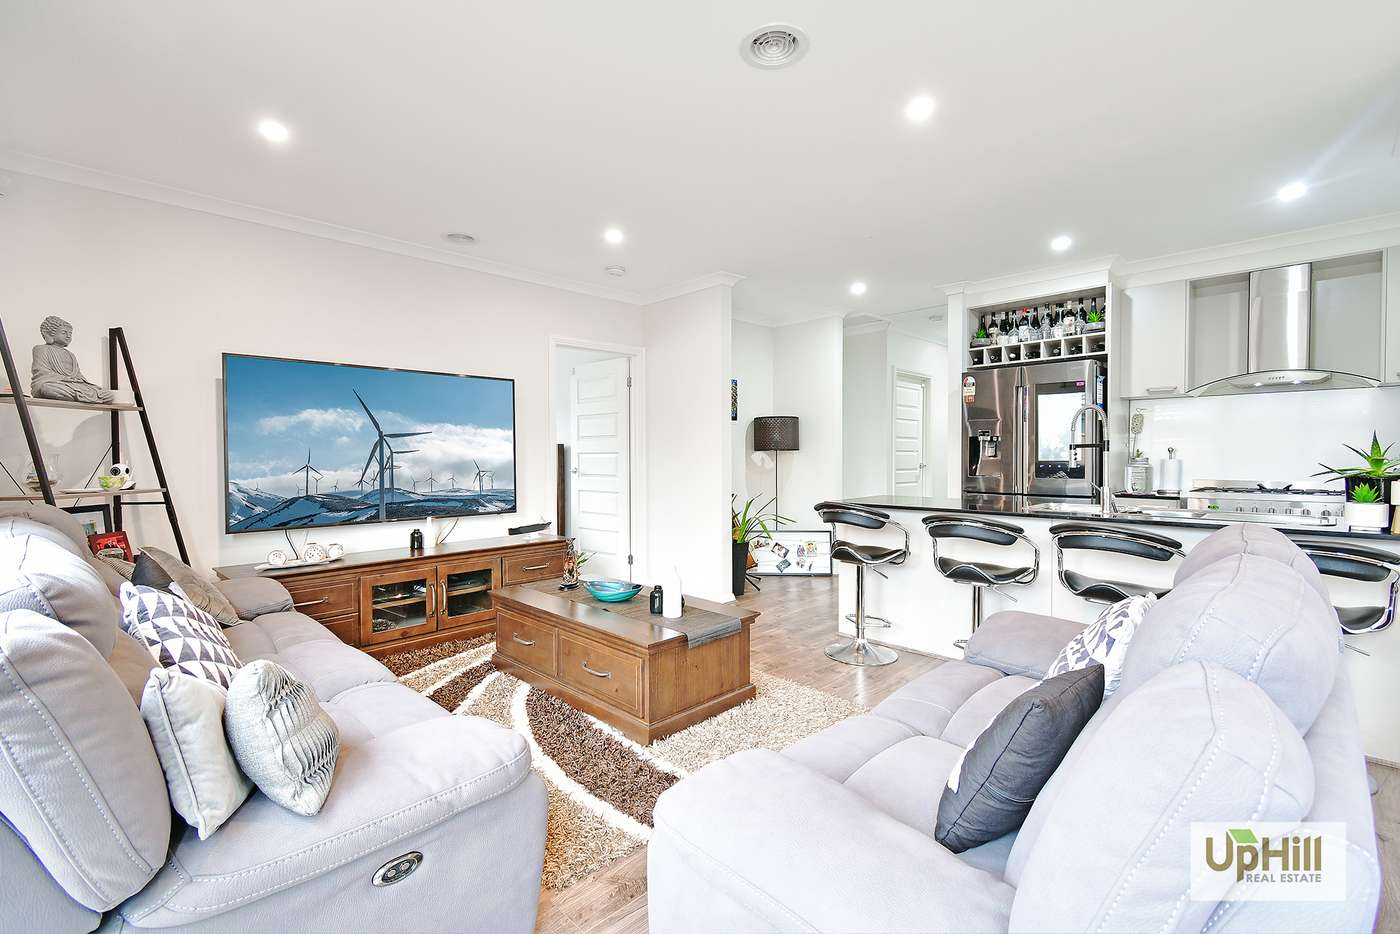 Seventh view of Homely house listing, 11 Great Banjo Street, Clyde North VIC 3978